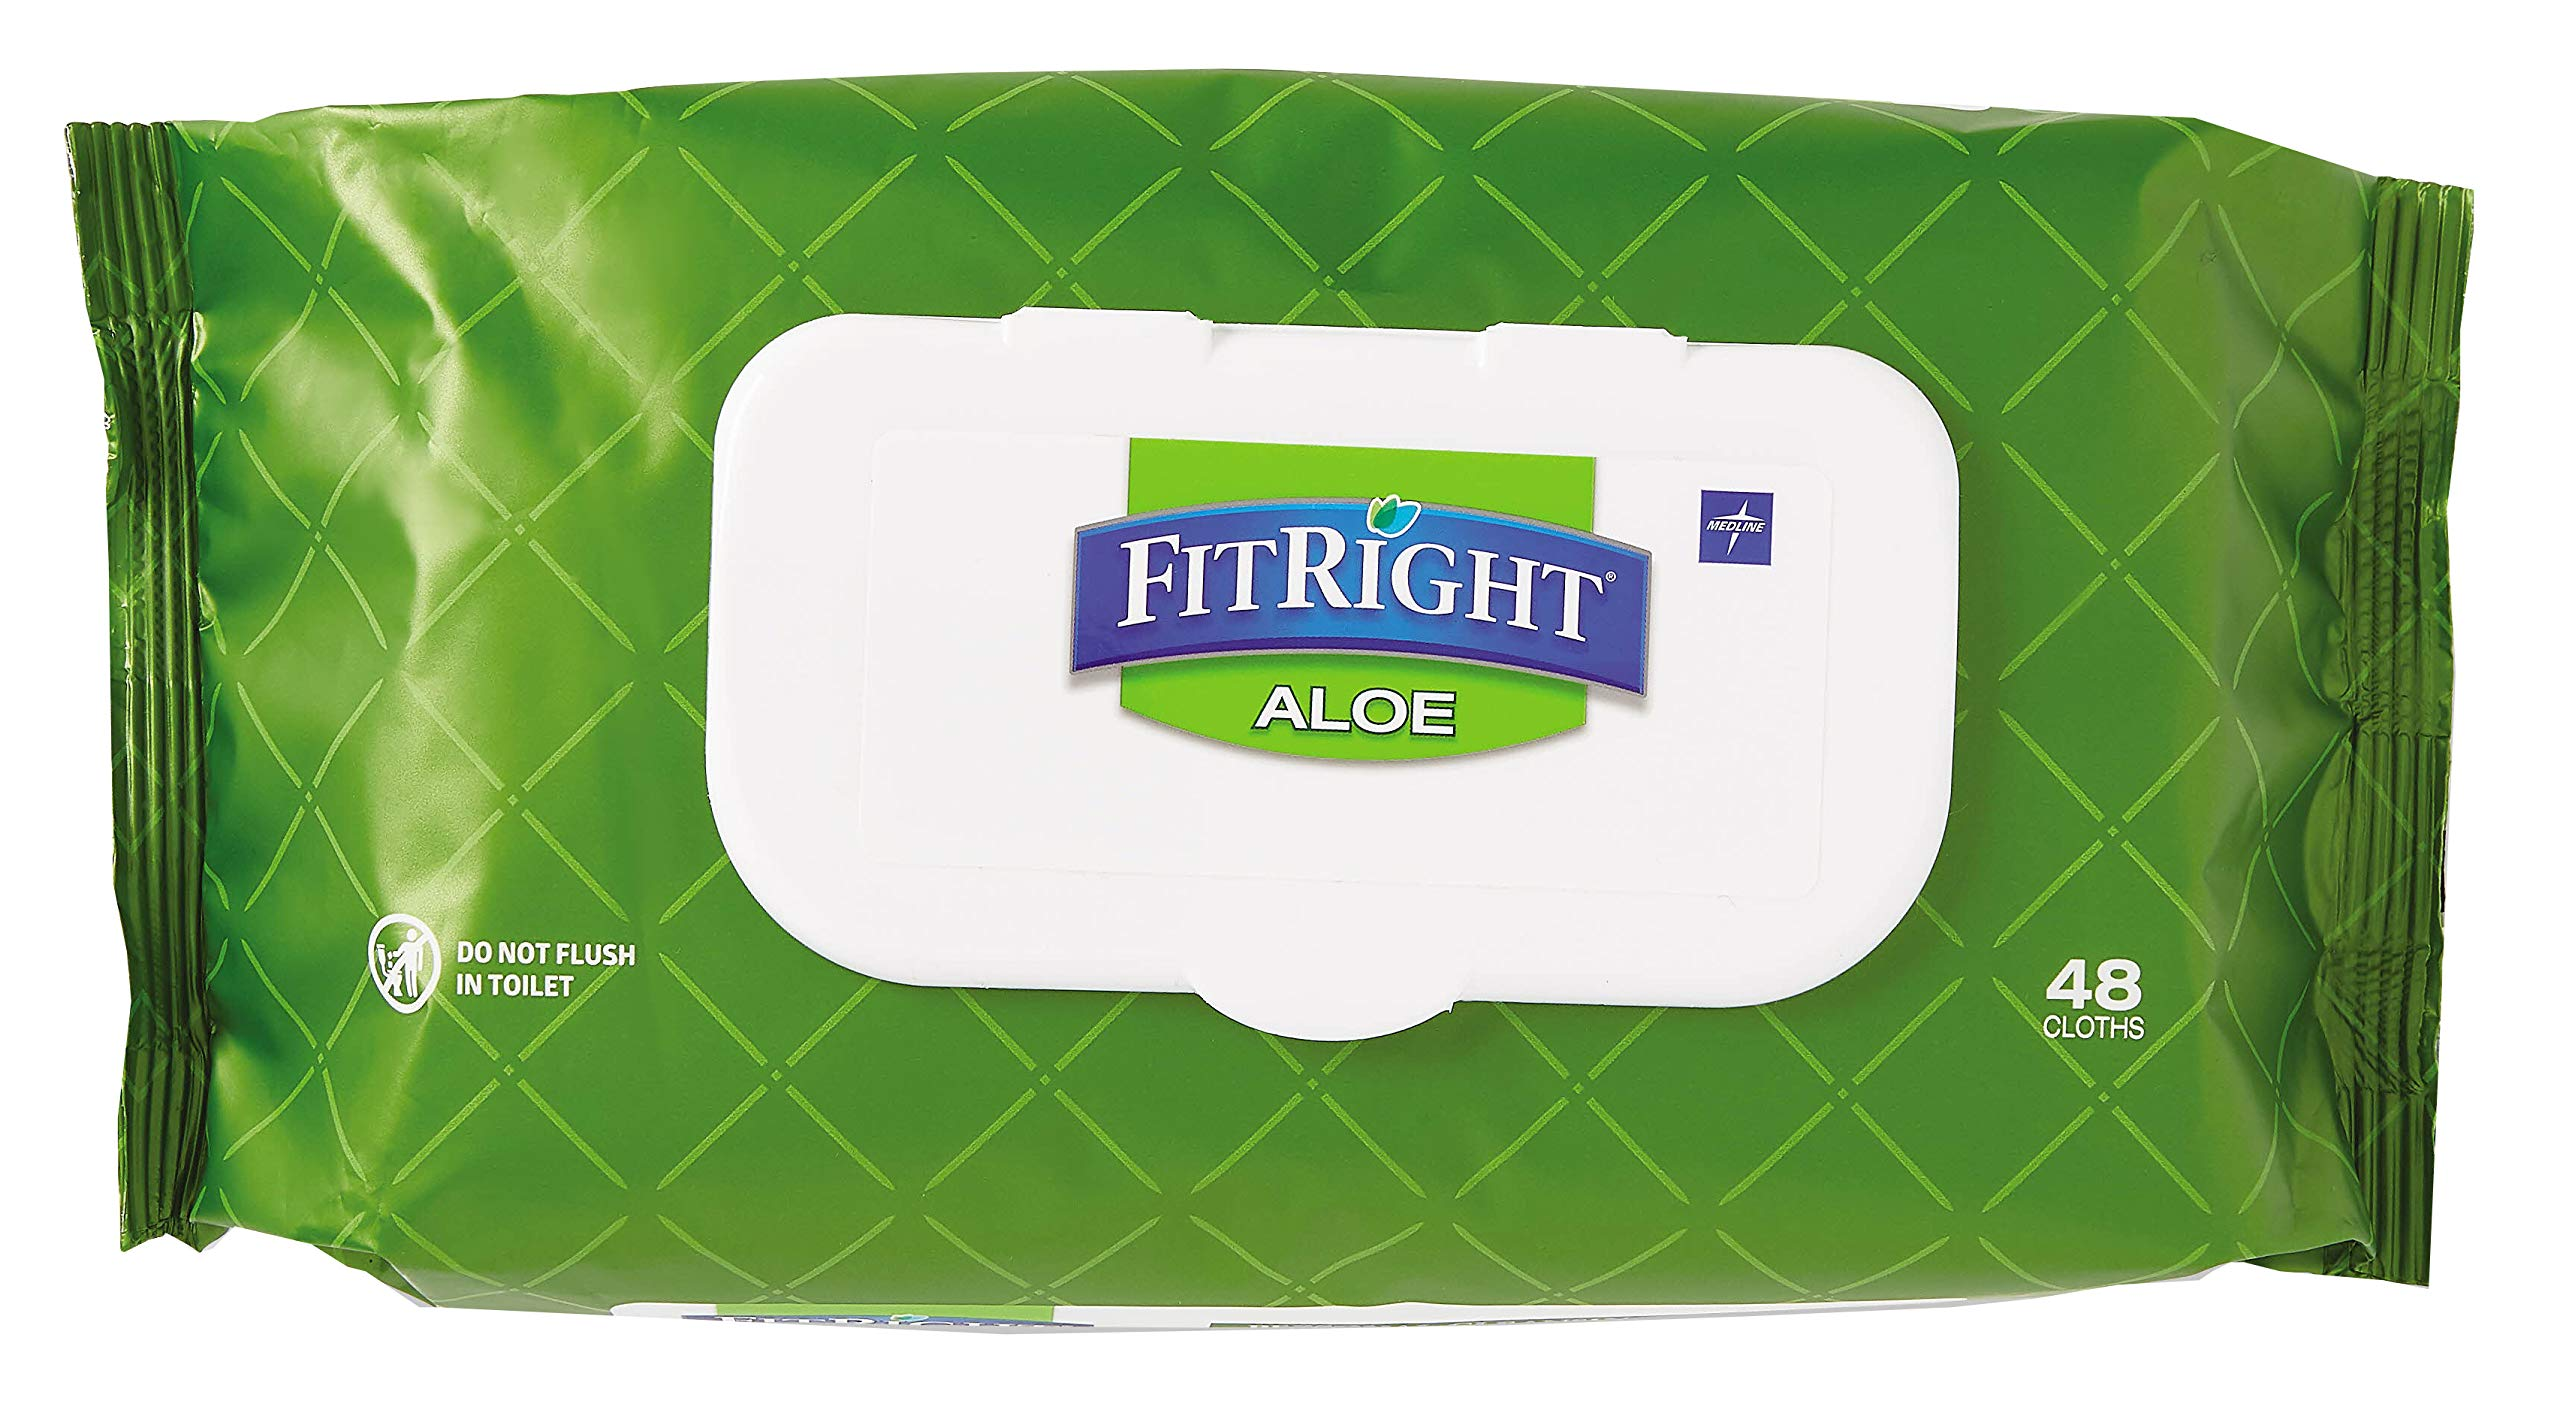 FitRight Aloe Quilted Heavyweight Personal Cleansing Cloth Wipes, Unscented, 576 Count, 8 x 12 inch Adult Large Incontinence Wipes by Medline